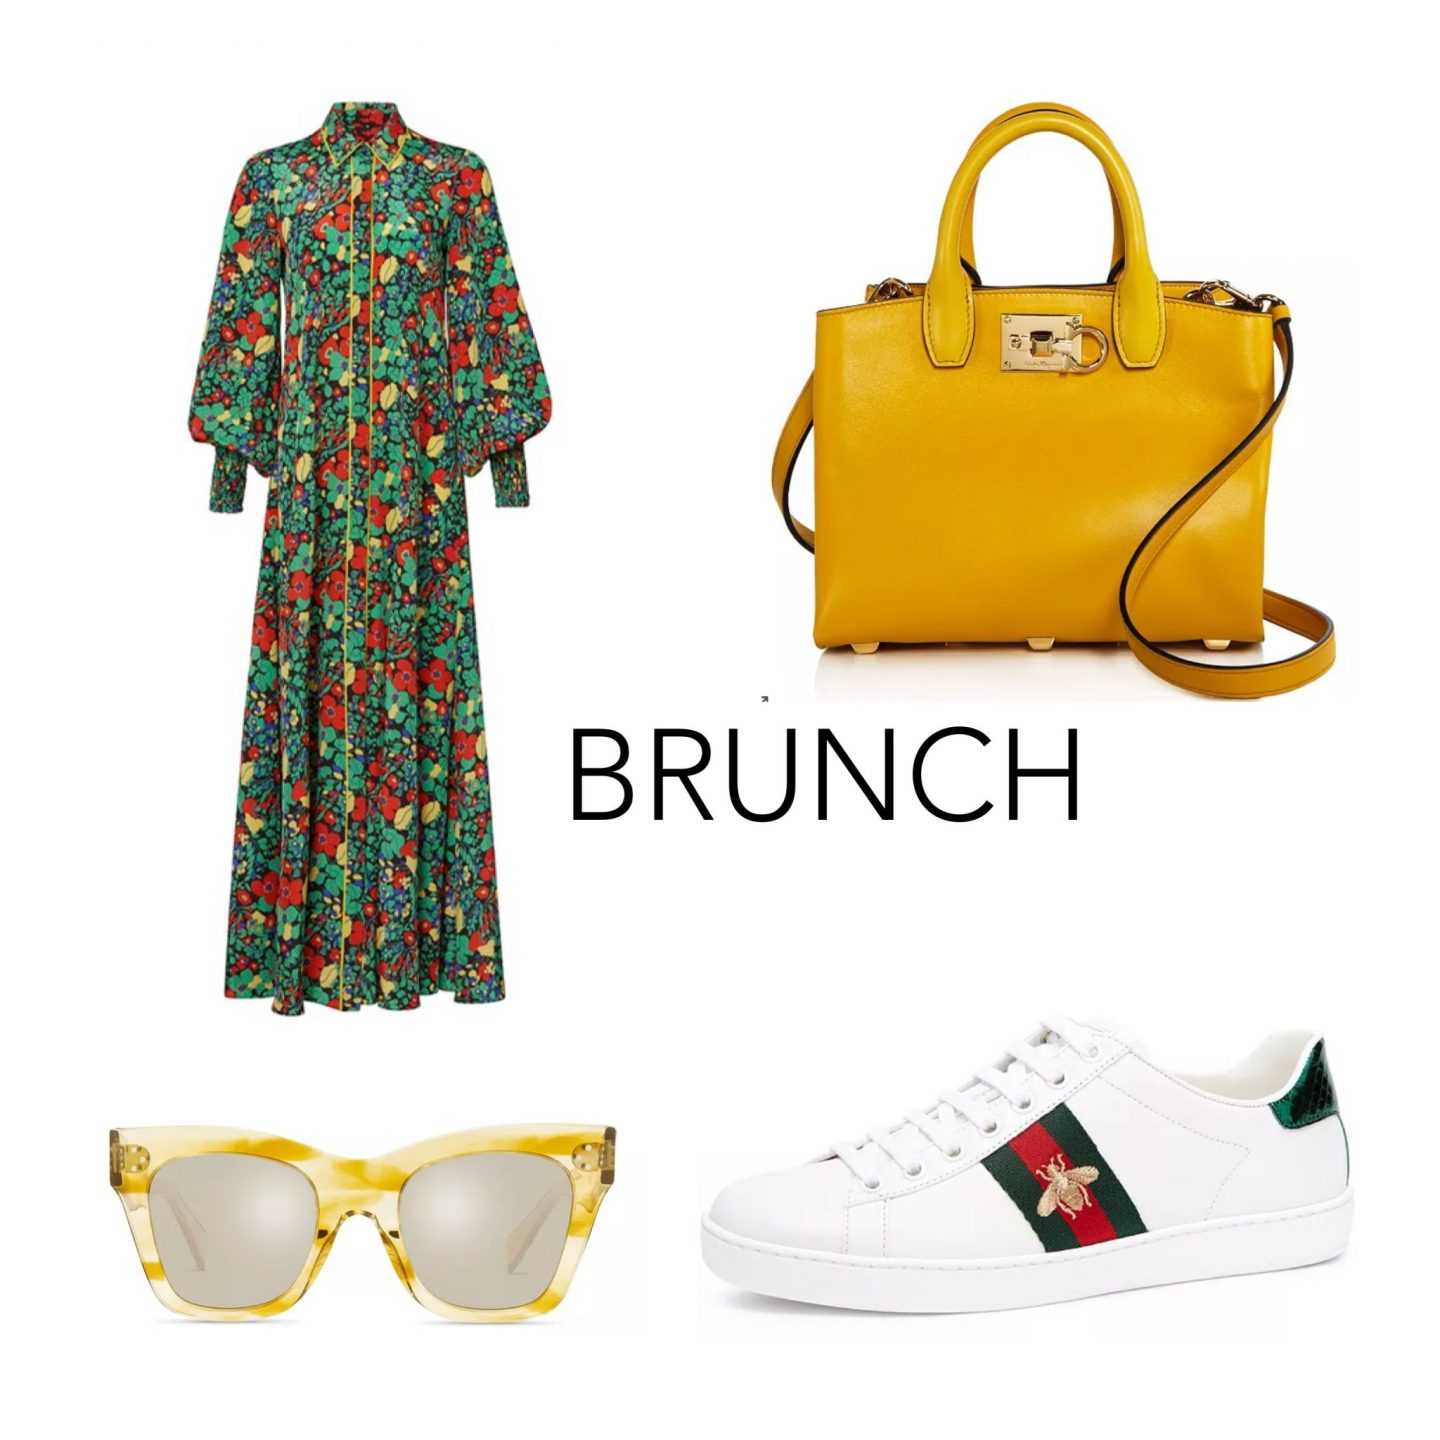 atlanta fashion blogger monica awe-etuk shows you how to style a floral maxi dress for brunch, Salvatore Ferragamo yellow bag, gucci sneakers, yellow sungalsses